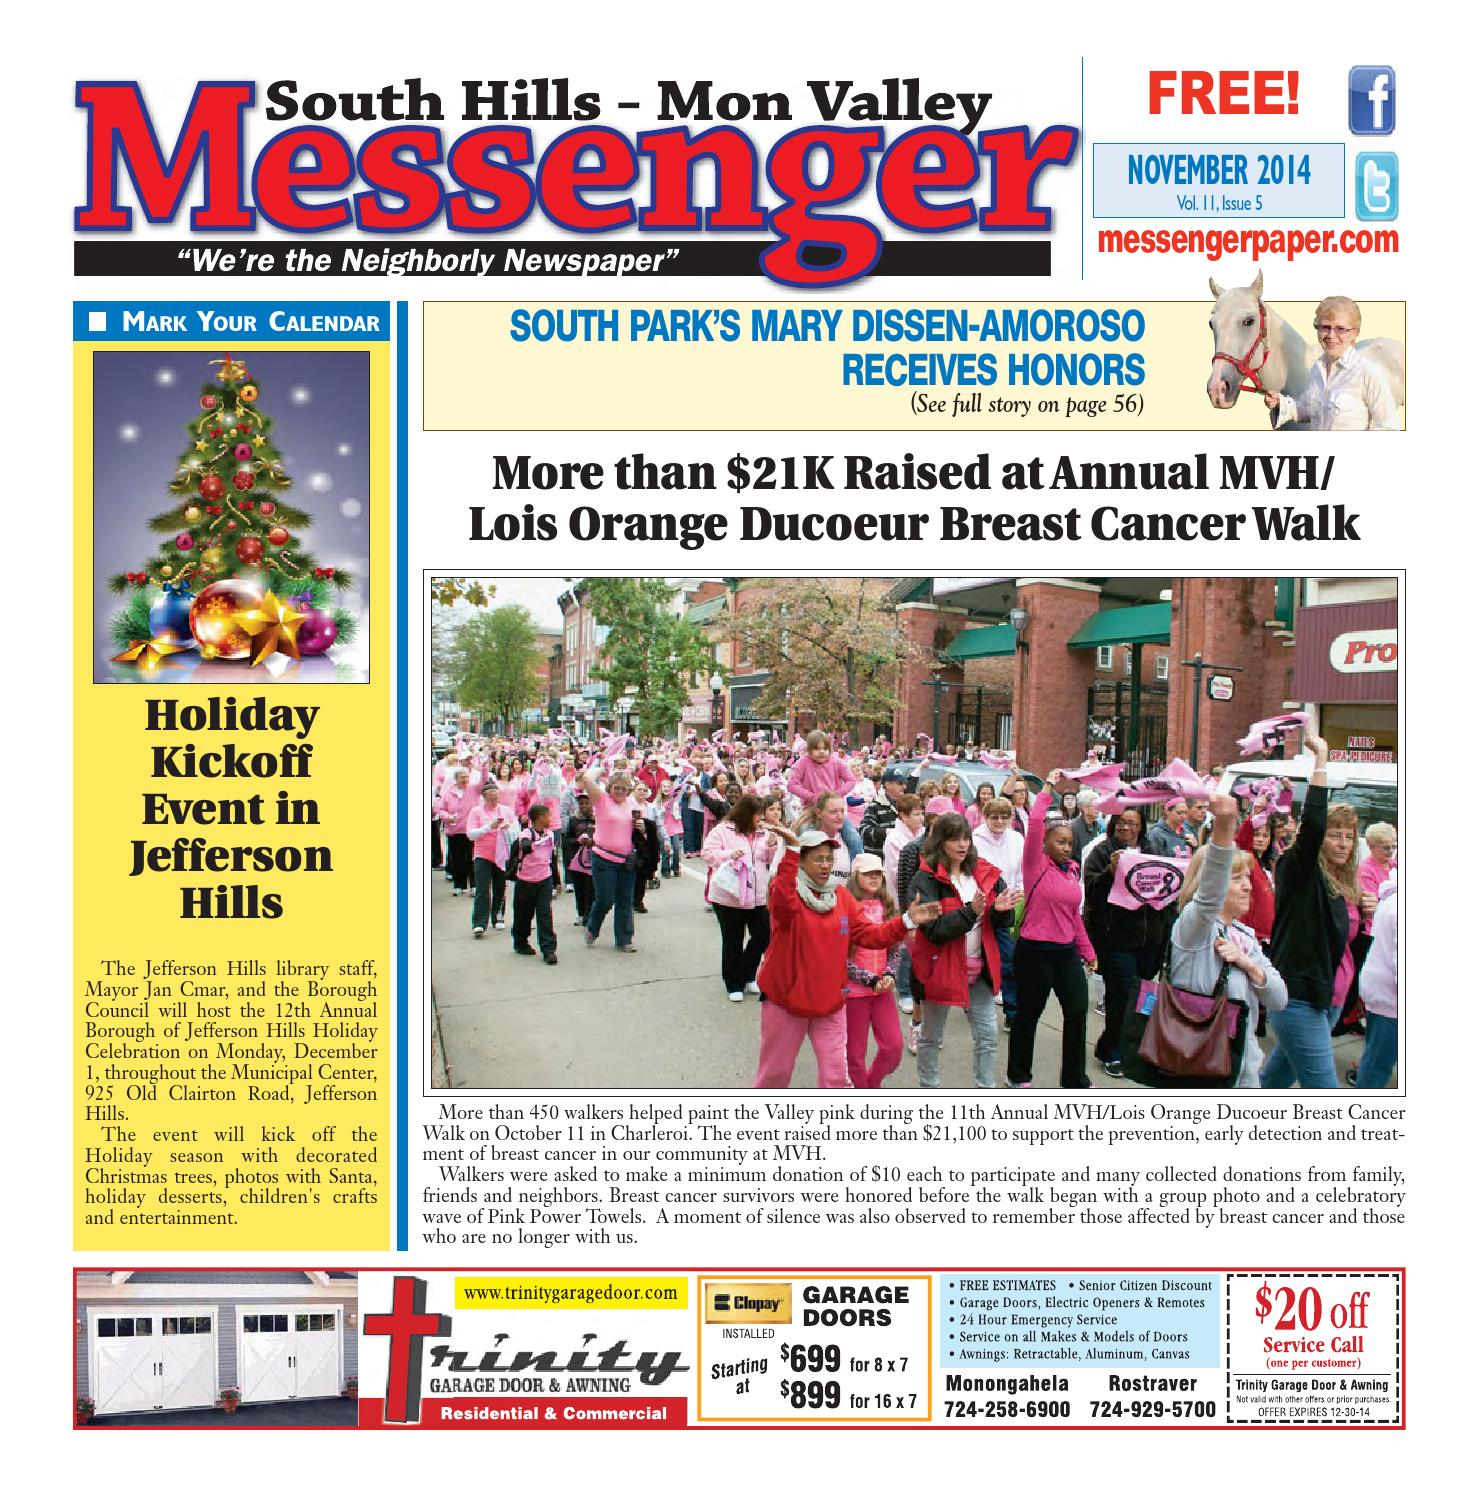 South hills mon valley messenger november 2014 by south hills mon south hills mon valley messenger november 2014 by south hills mon valley messenger issuu fandeluxe Images